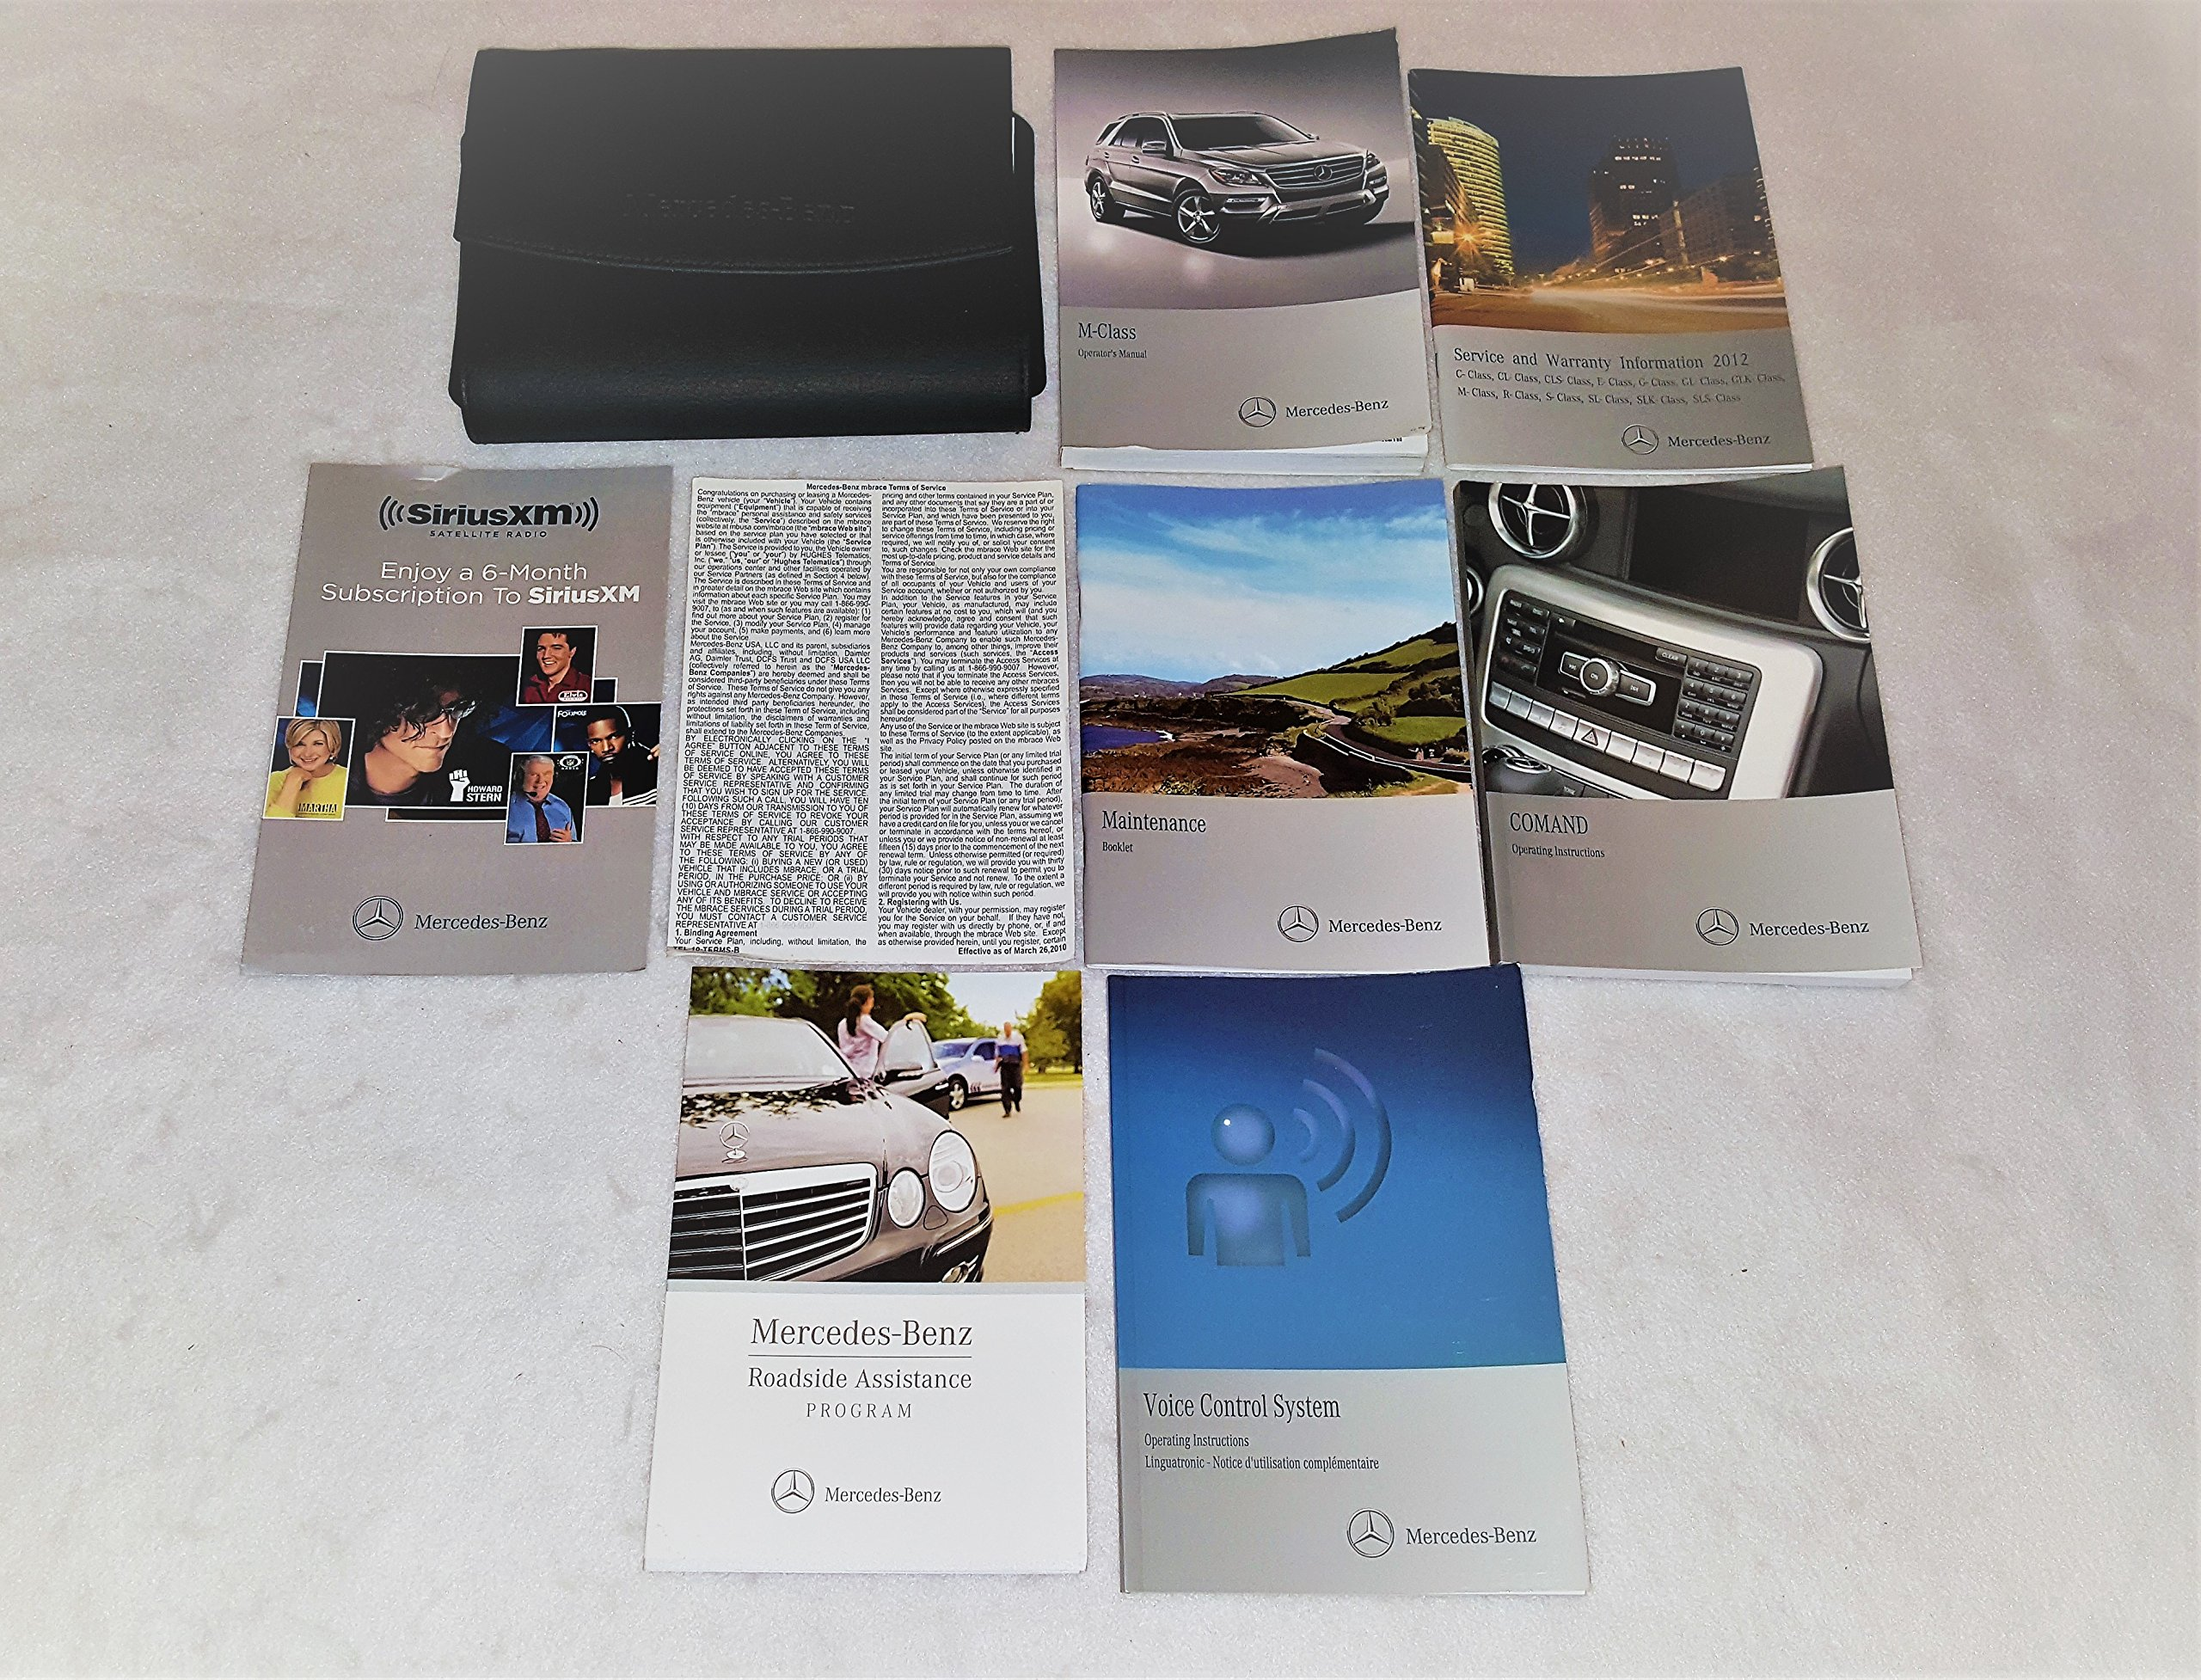 2012 mercedes benz glk owners manual guide book mercedes benz rh amazon com mercedes glk service manual mercedes glk owners manual pdf